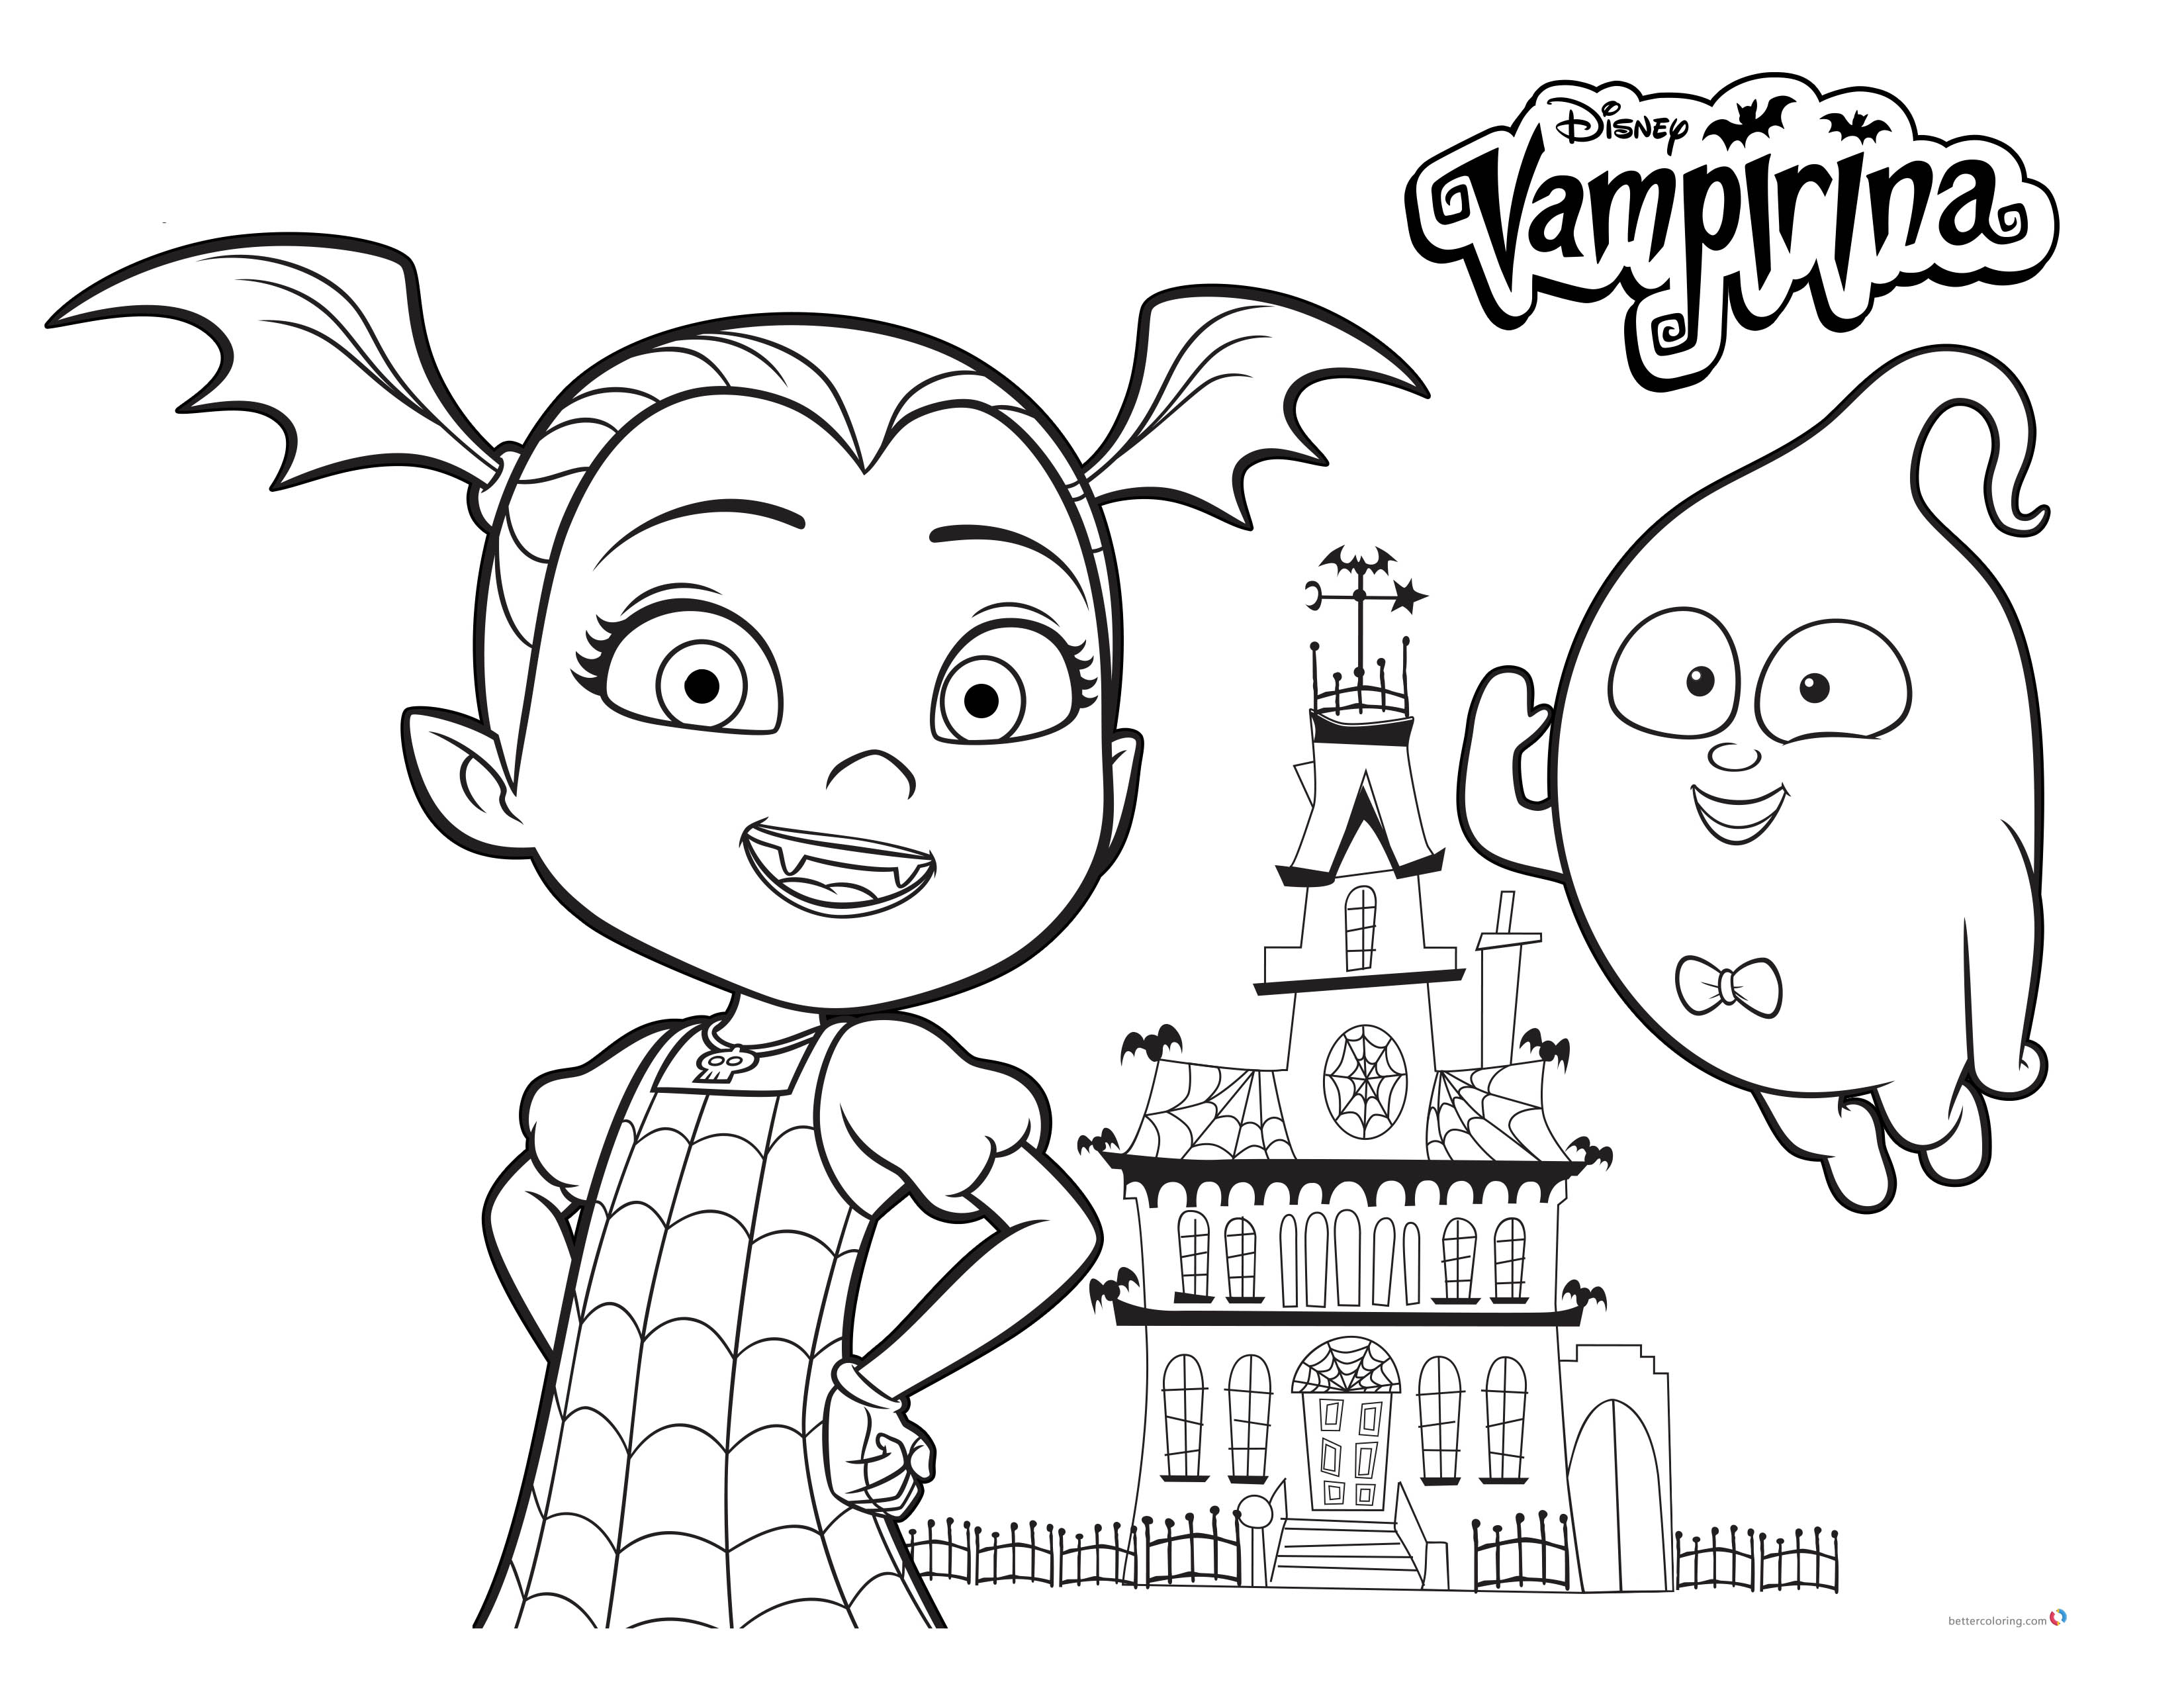 Vampirina coloring pages with Demi printable